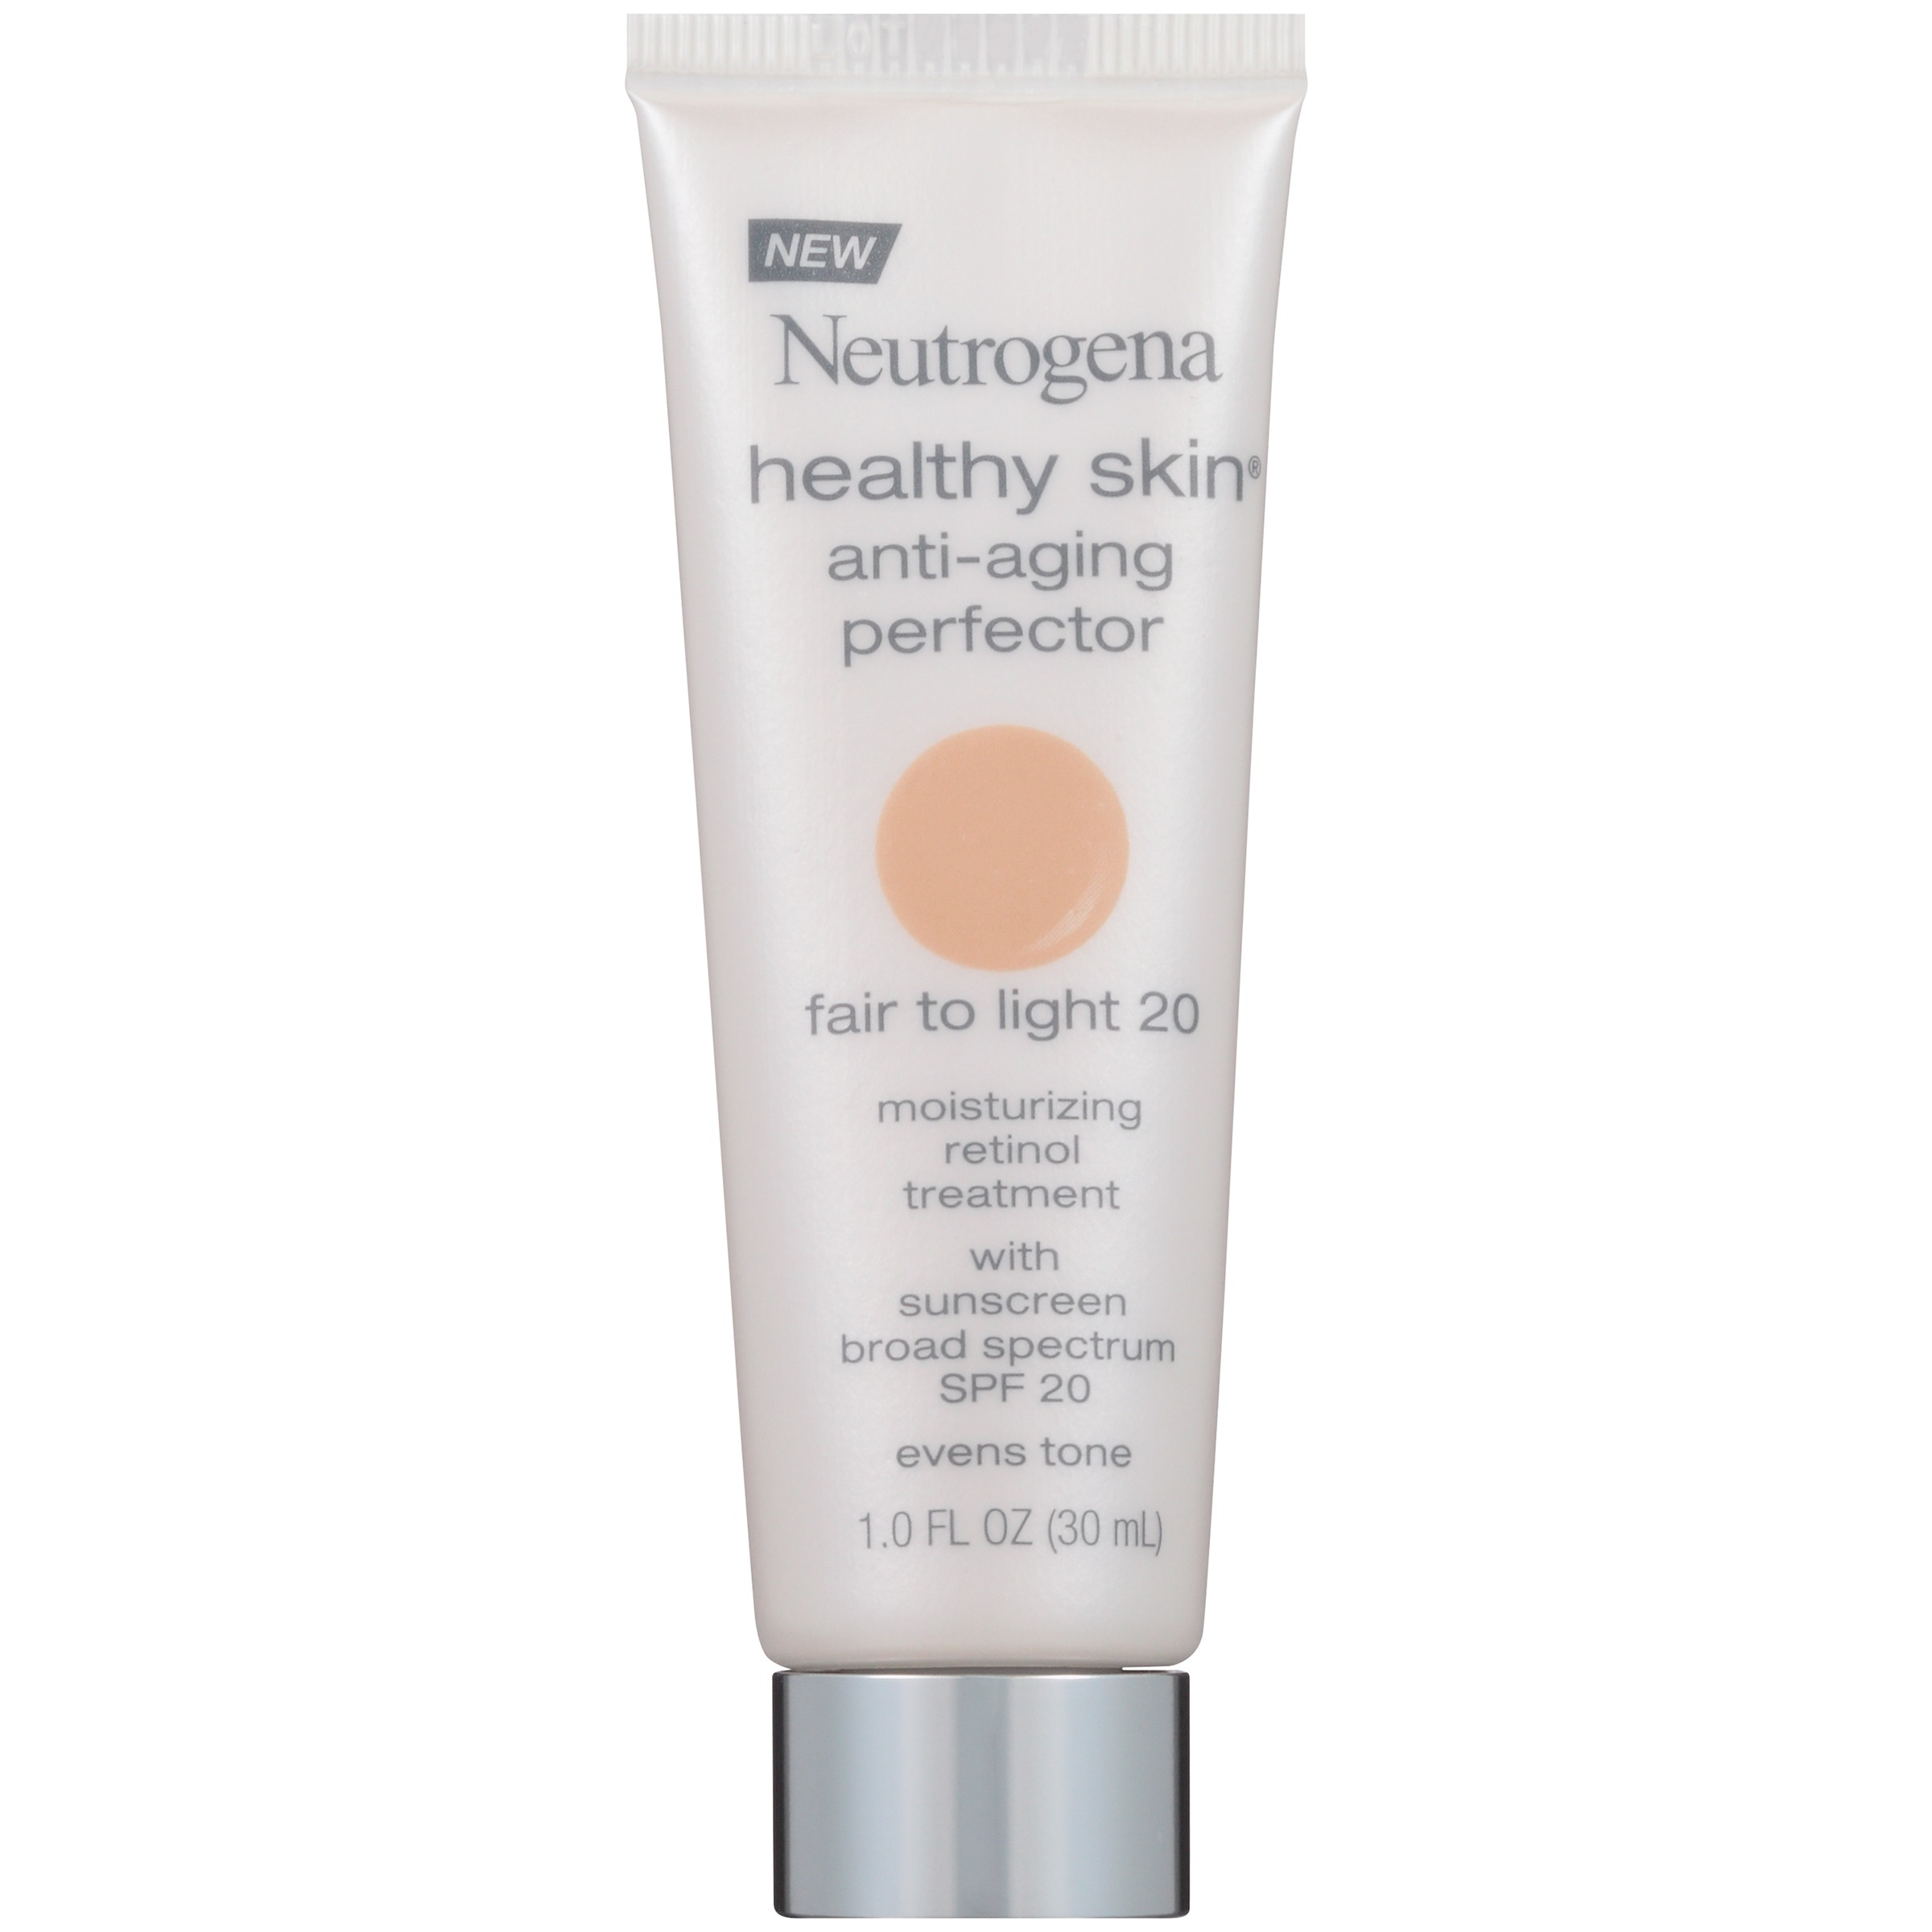 Neutrogena Healthy Skin Anti-Aging Perfector SPF 20, 20 Fair To Light, 1 Fl. Oz